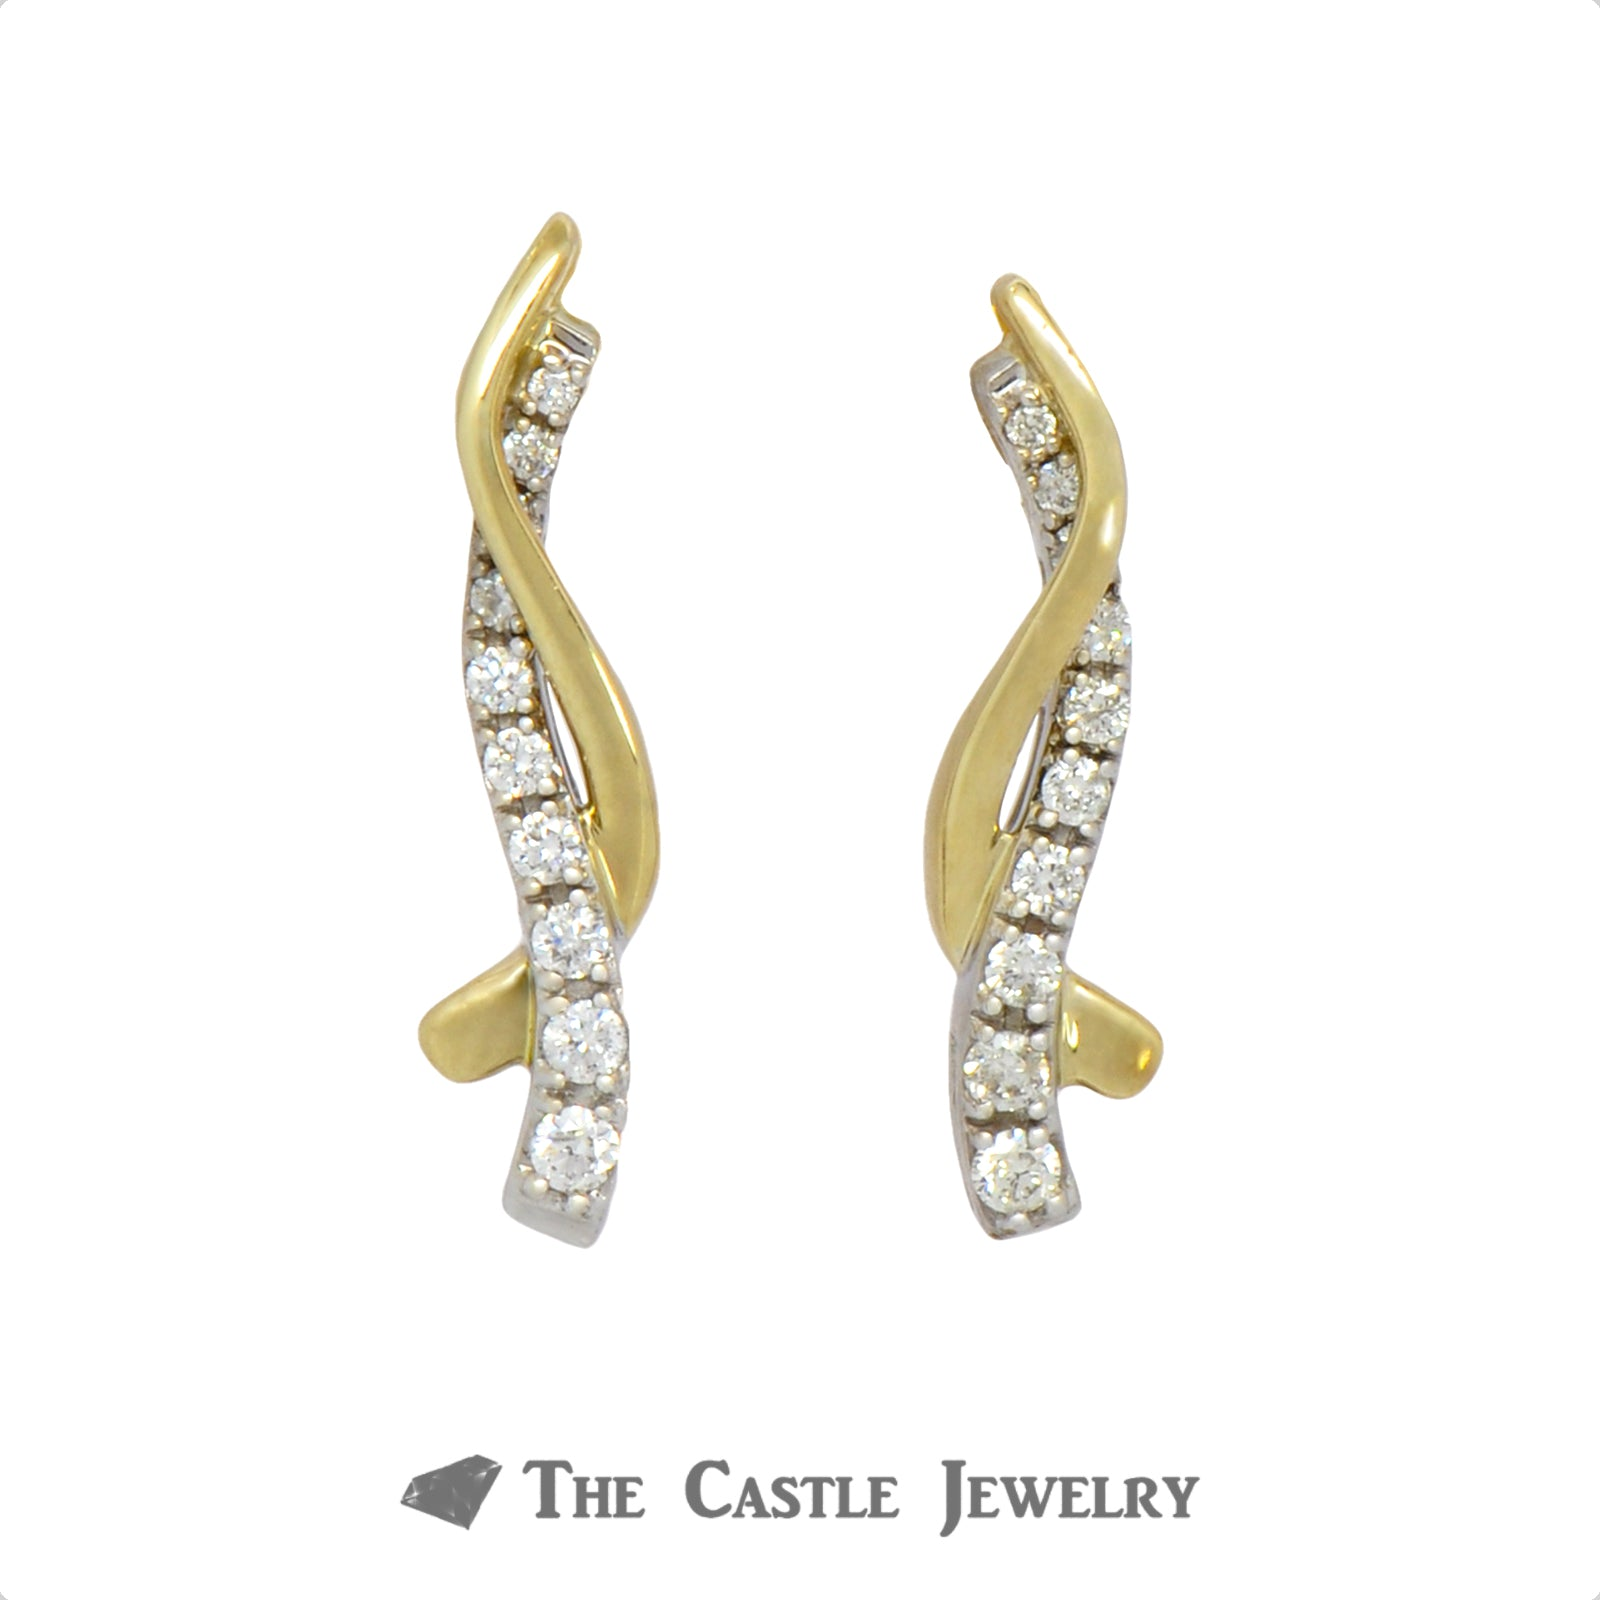 Graduated .25cttw Diamond Earrings with Intertwining Gold Bars